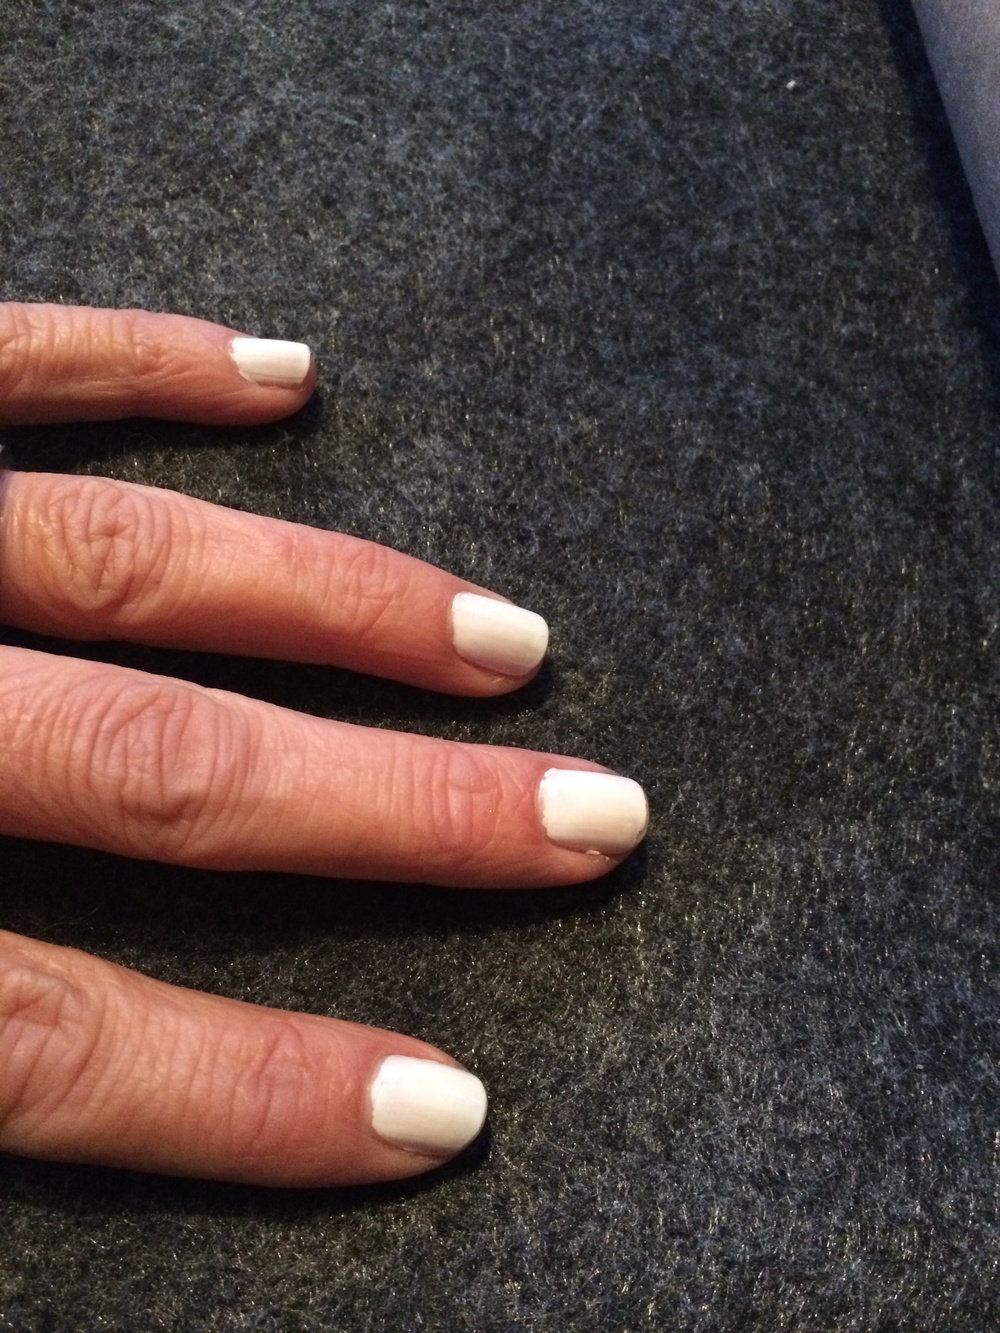 My white nails 1 week after my manicure using Covergirl Snow Storm & Deborah Lippman as a base and top coat.